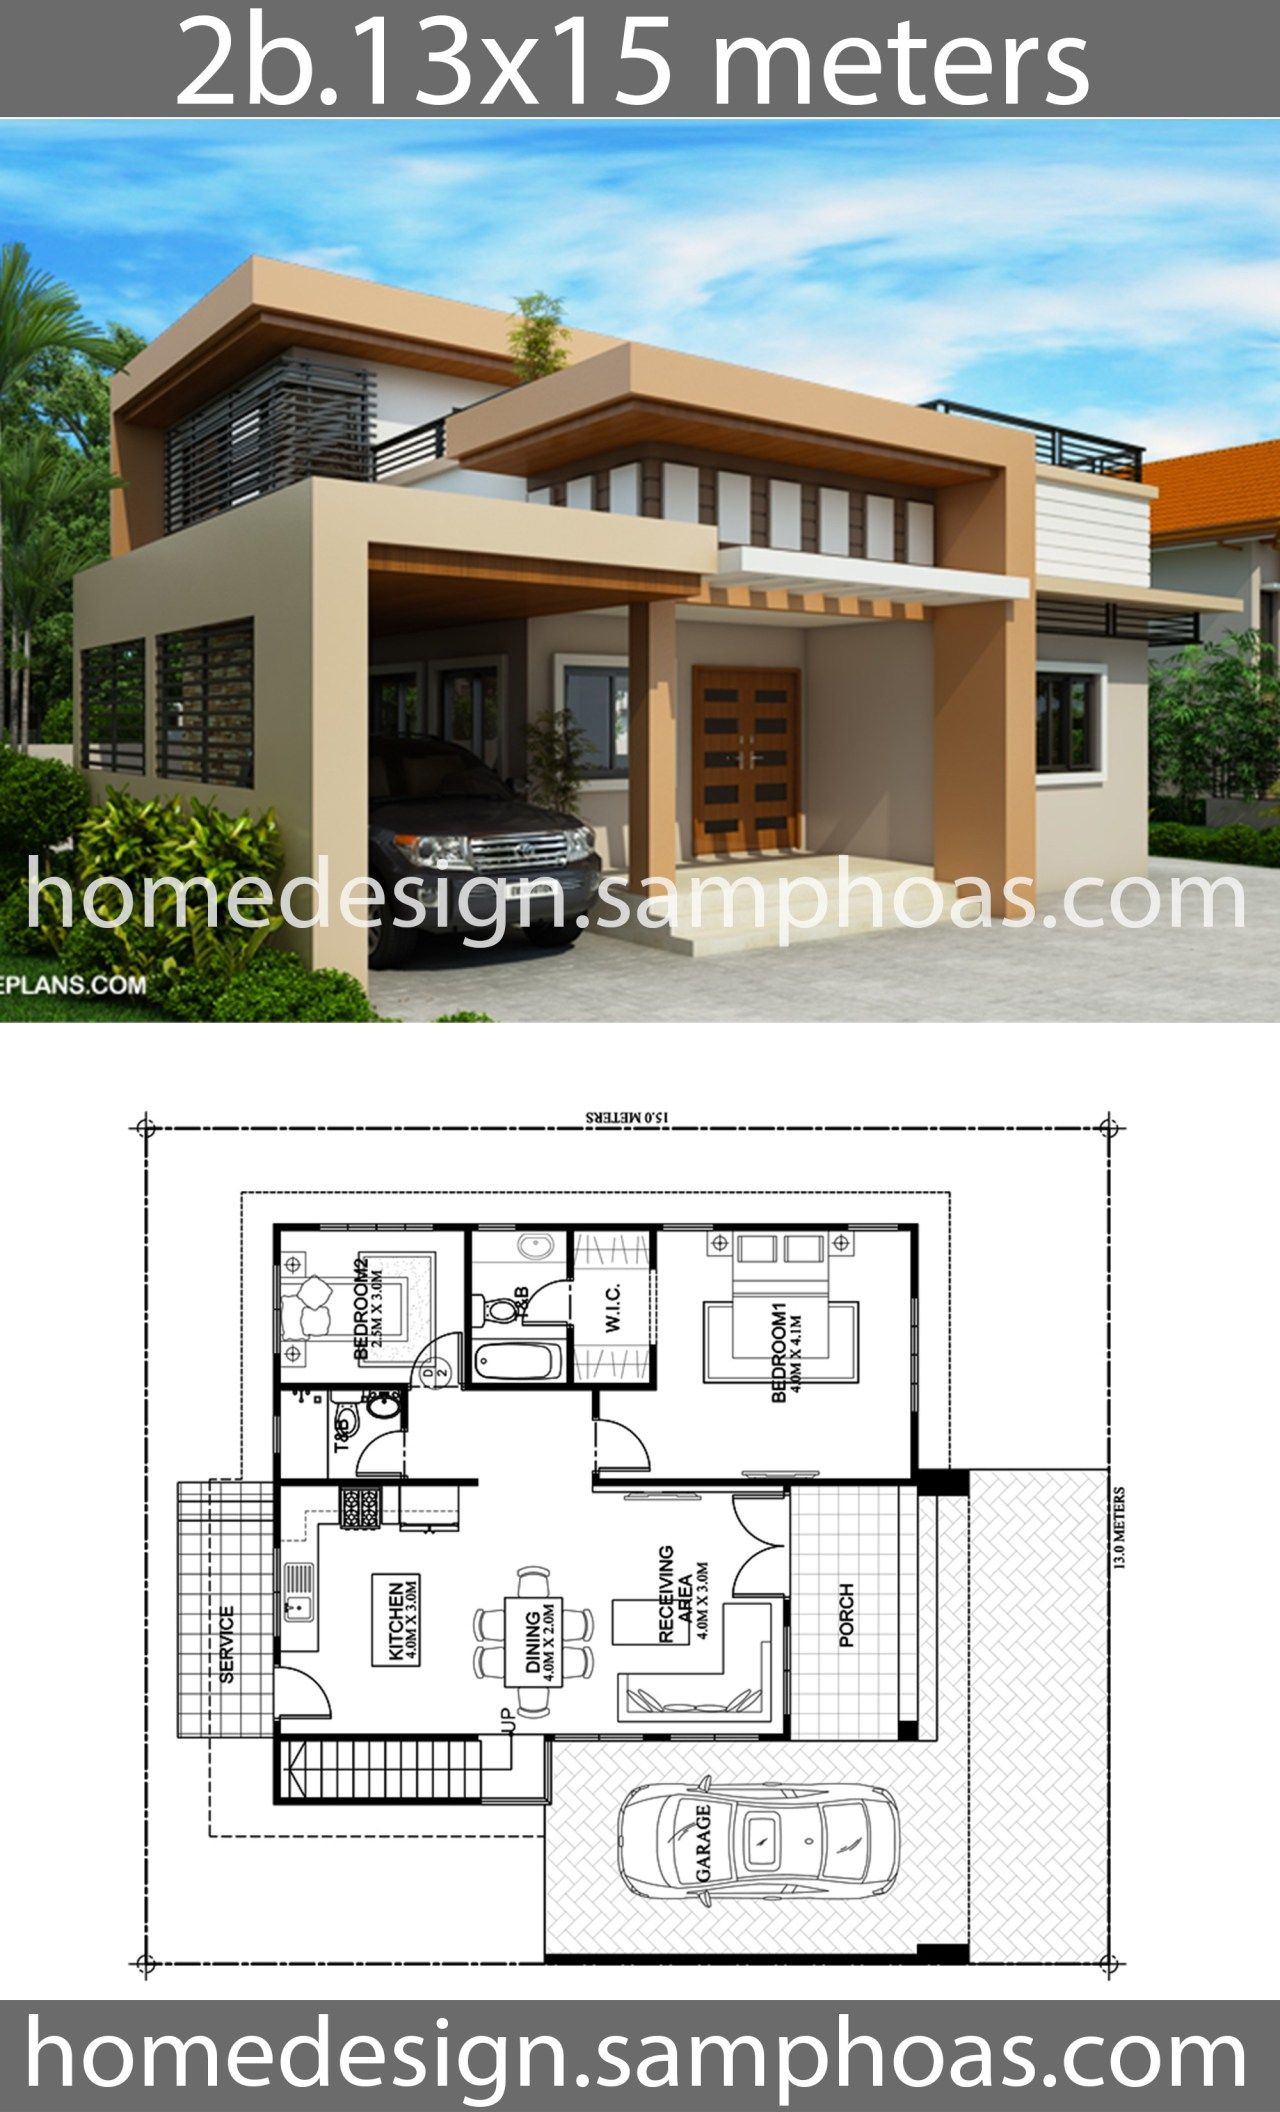 One Story House Plans 13x15m With 2 Bedrooms Home Ideas House Plans Story House House